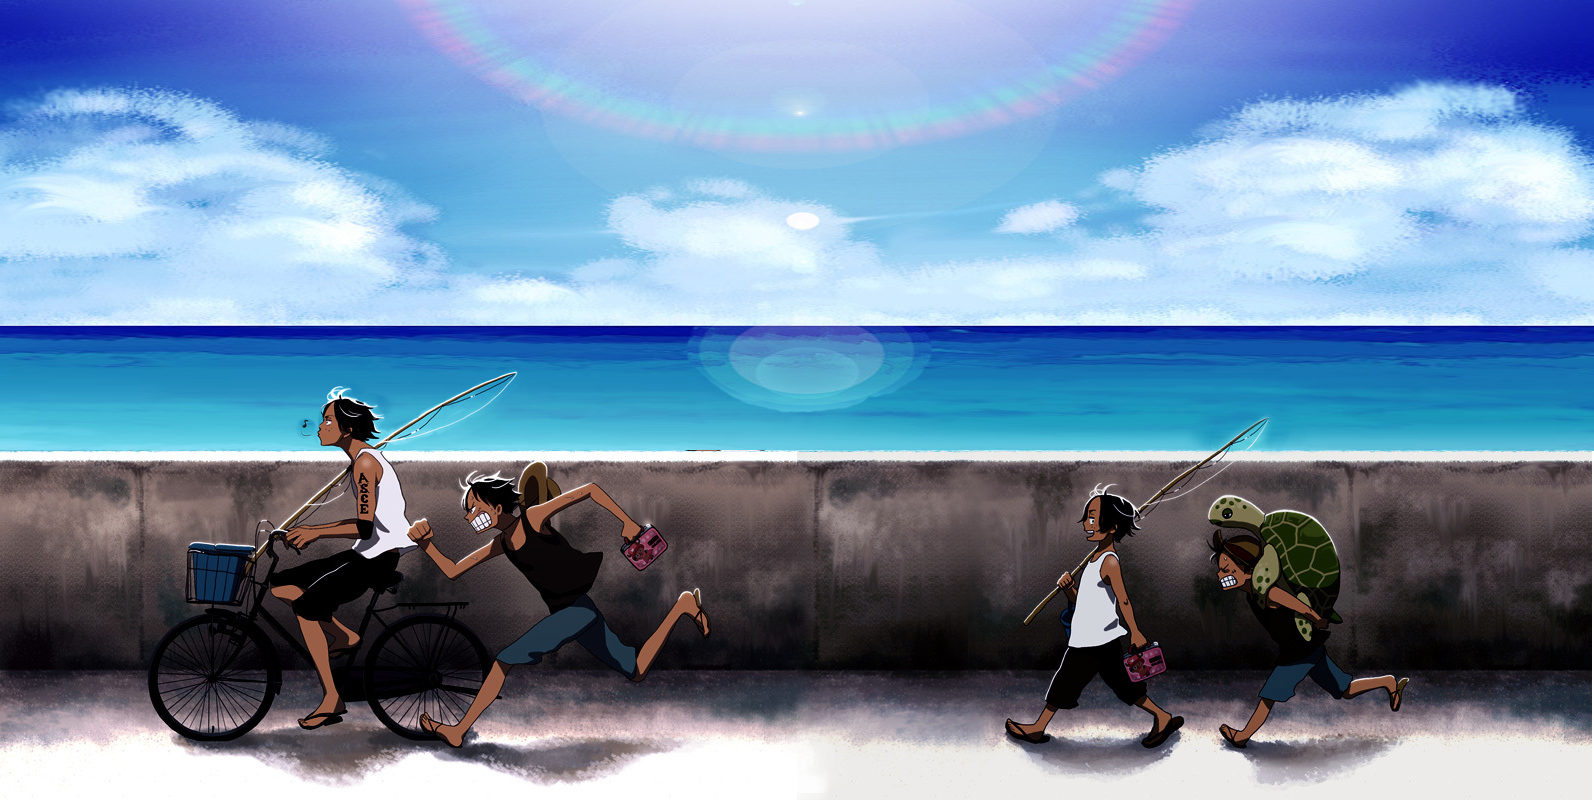 ace and luffy fighting wallpaper - photo #26